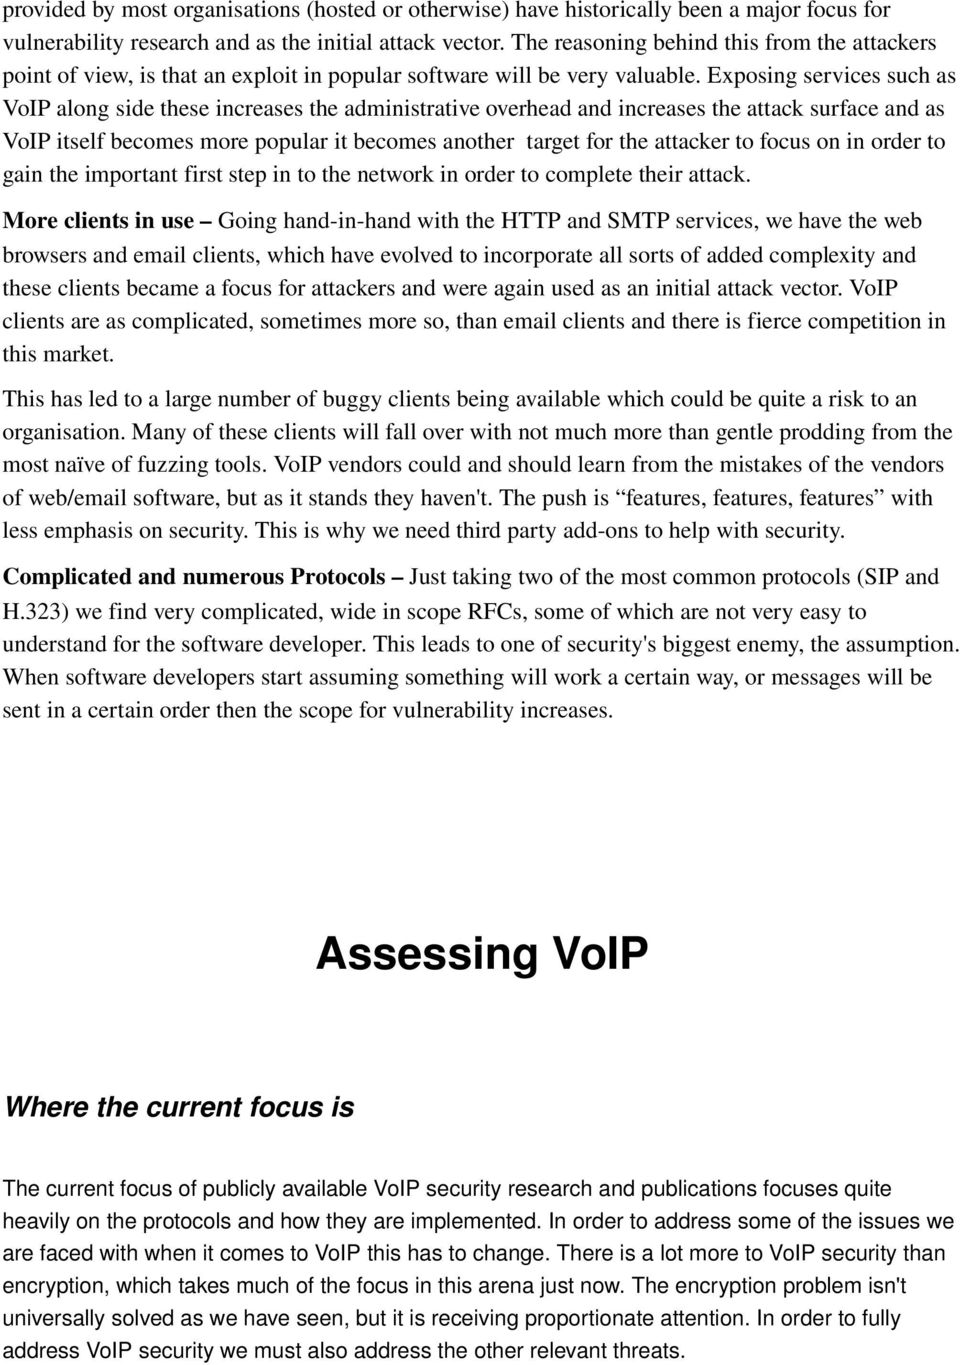 Exposing services such as VoIP along side these increases the administrative overhead and increases the attack surface and as VoIP itself becomes more popular it becomes another target for the